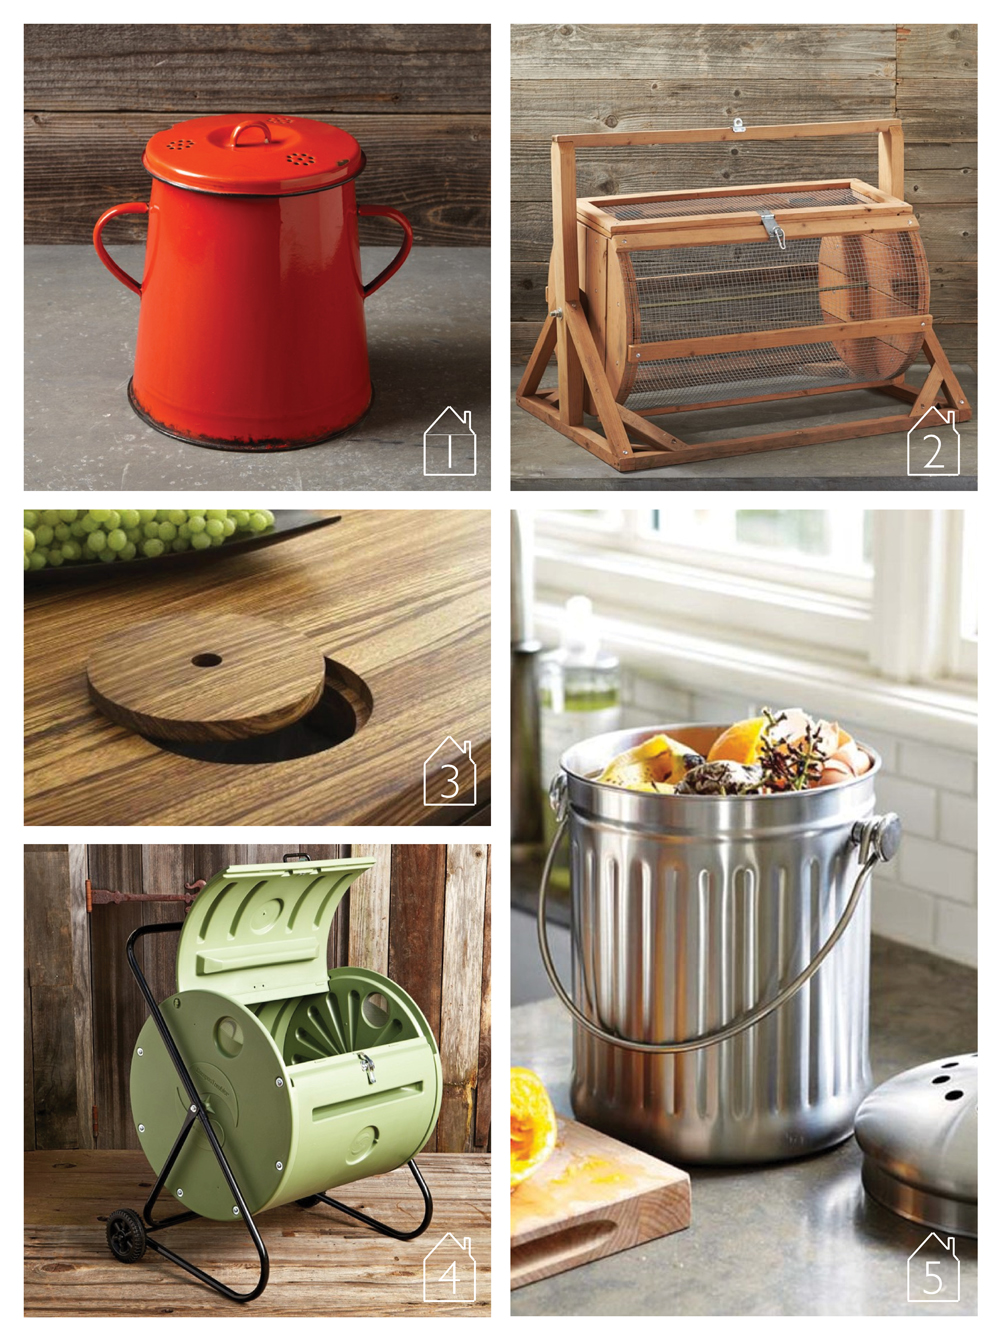 1. Vintage Enamel Compost Bin by  Williams-Sonoma  2. Redwood Cylindrical Composter by  Williams-Sonoma  3. An integrated countertop compost solution via  Remodelista  4. Back Porch Compost Tumblr by  Williams-Sonoma  5. Brushed Stainless-Steel Compost Pail by  Williams-Sonoma